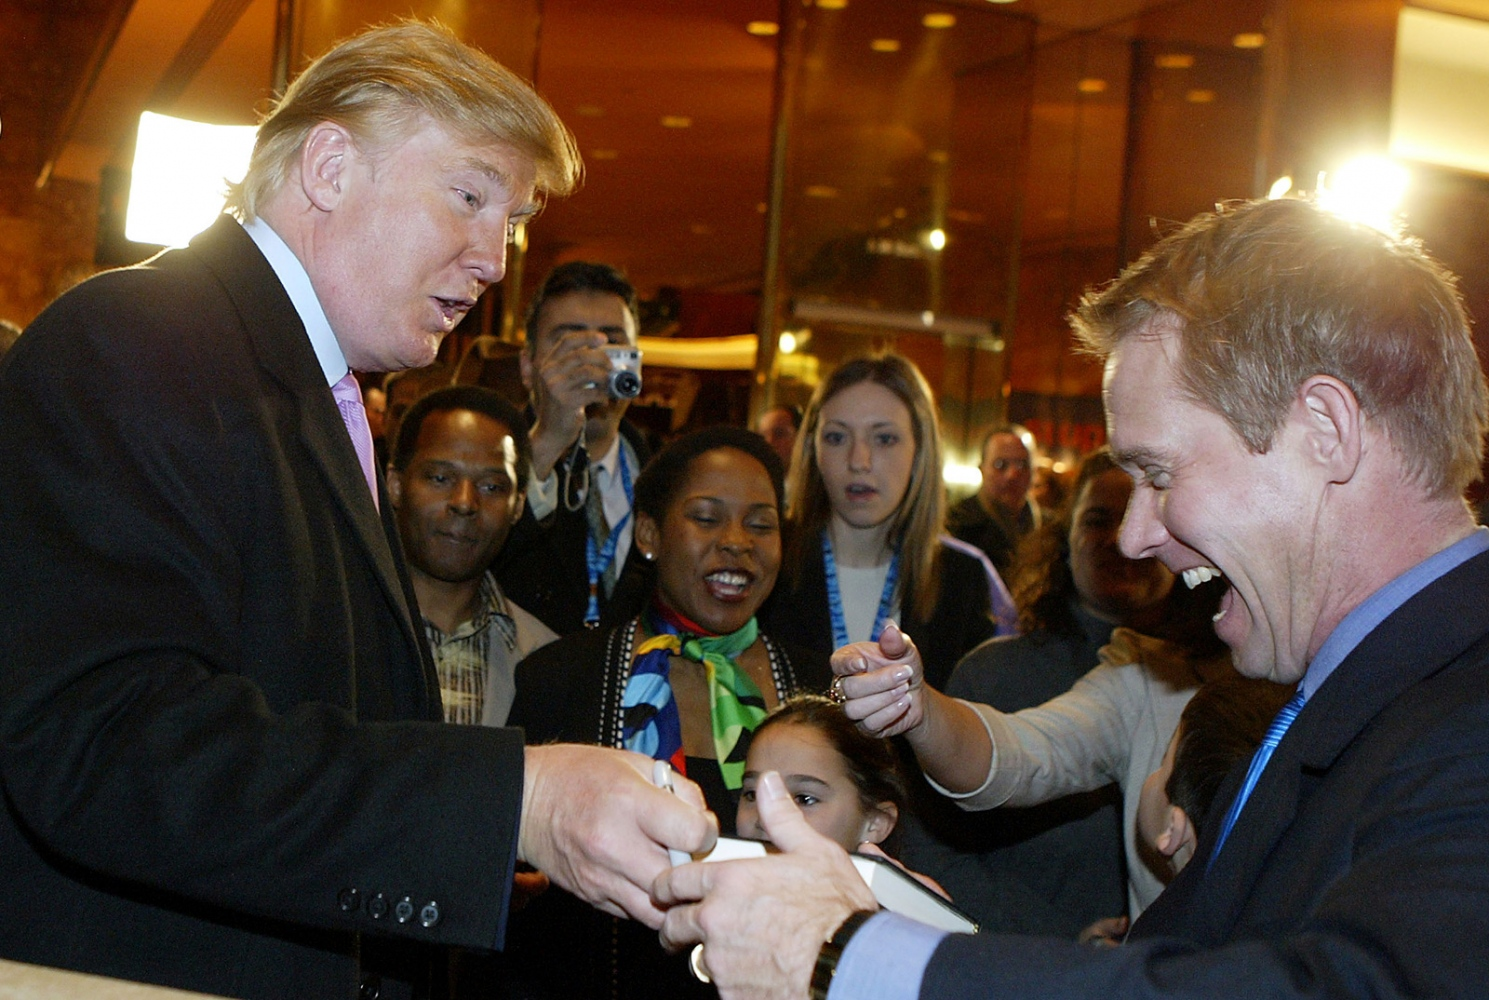 President Donald Trump signs a book to an unidentified supporter in New York.